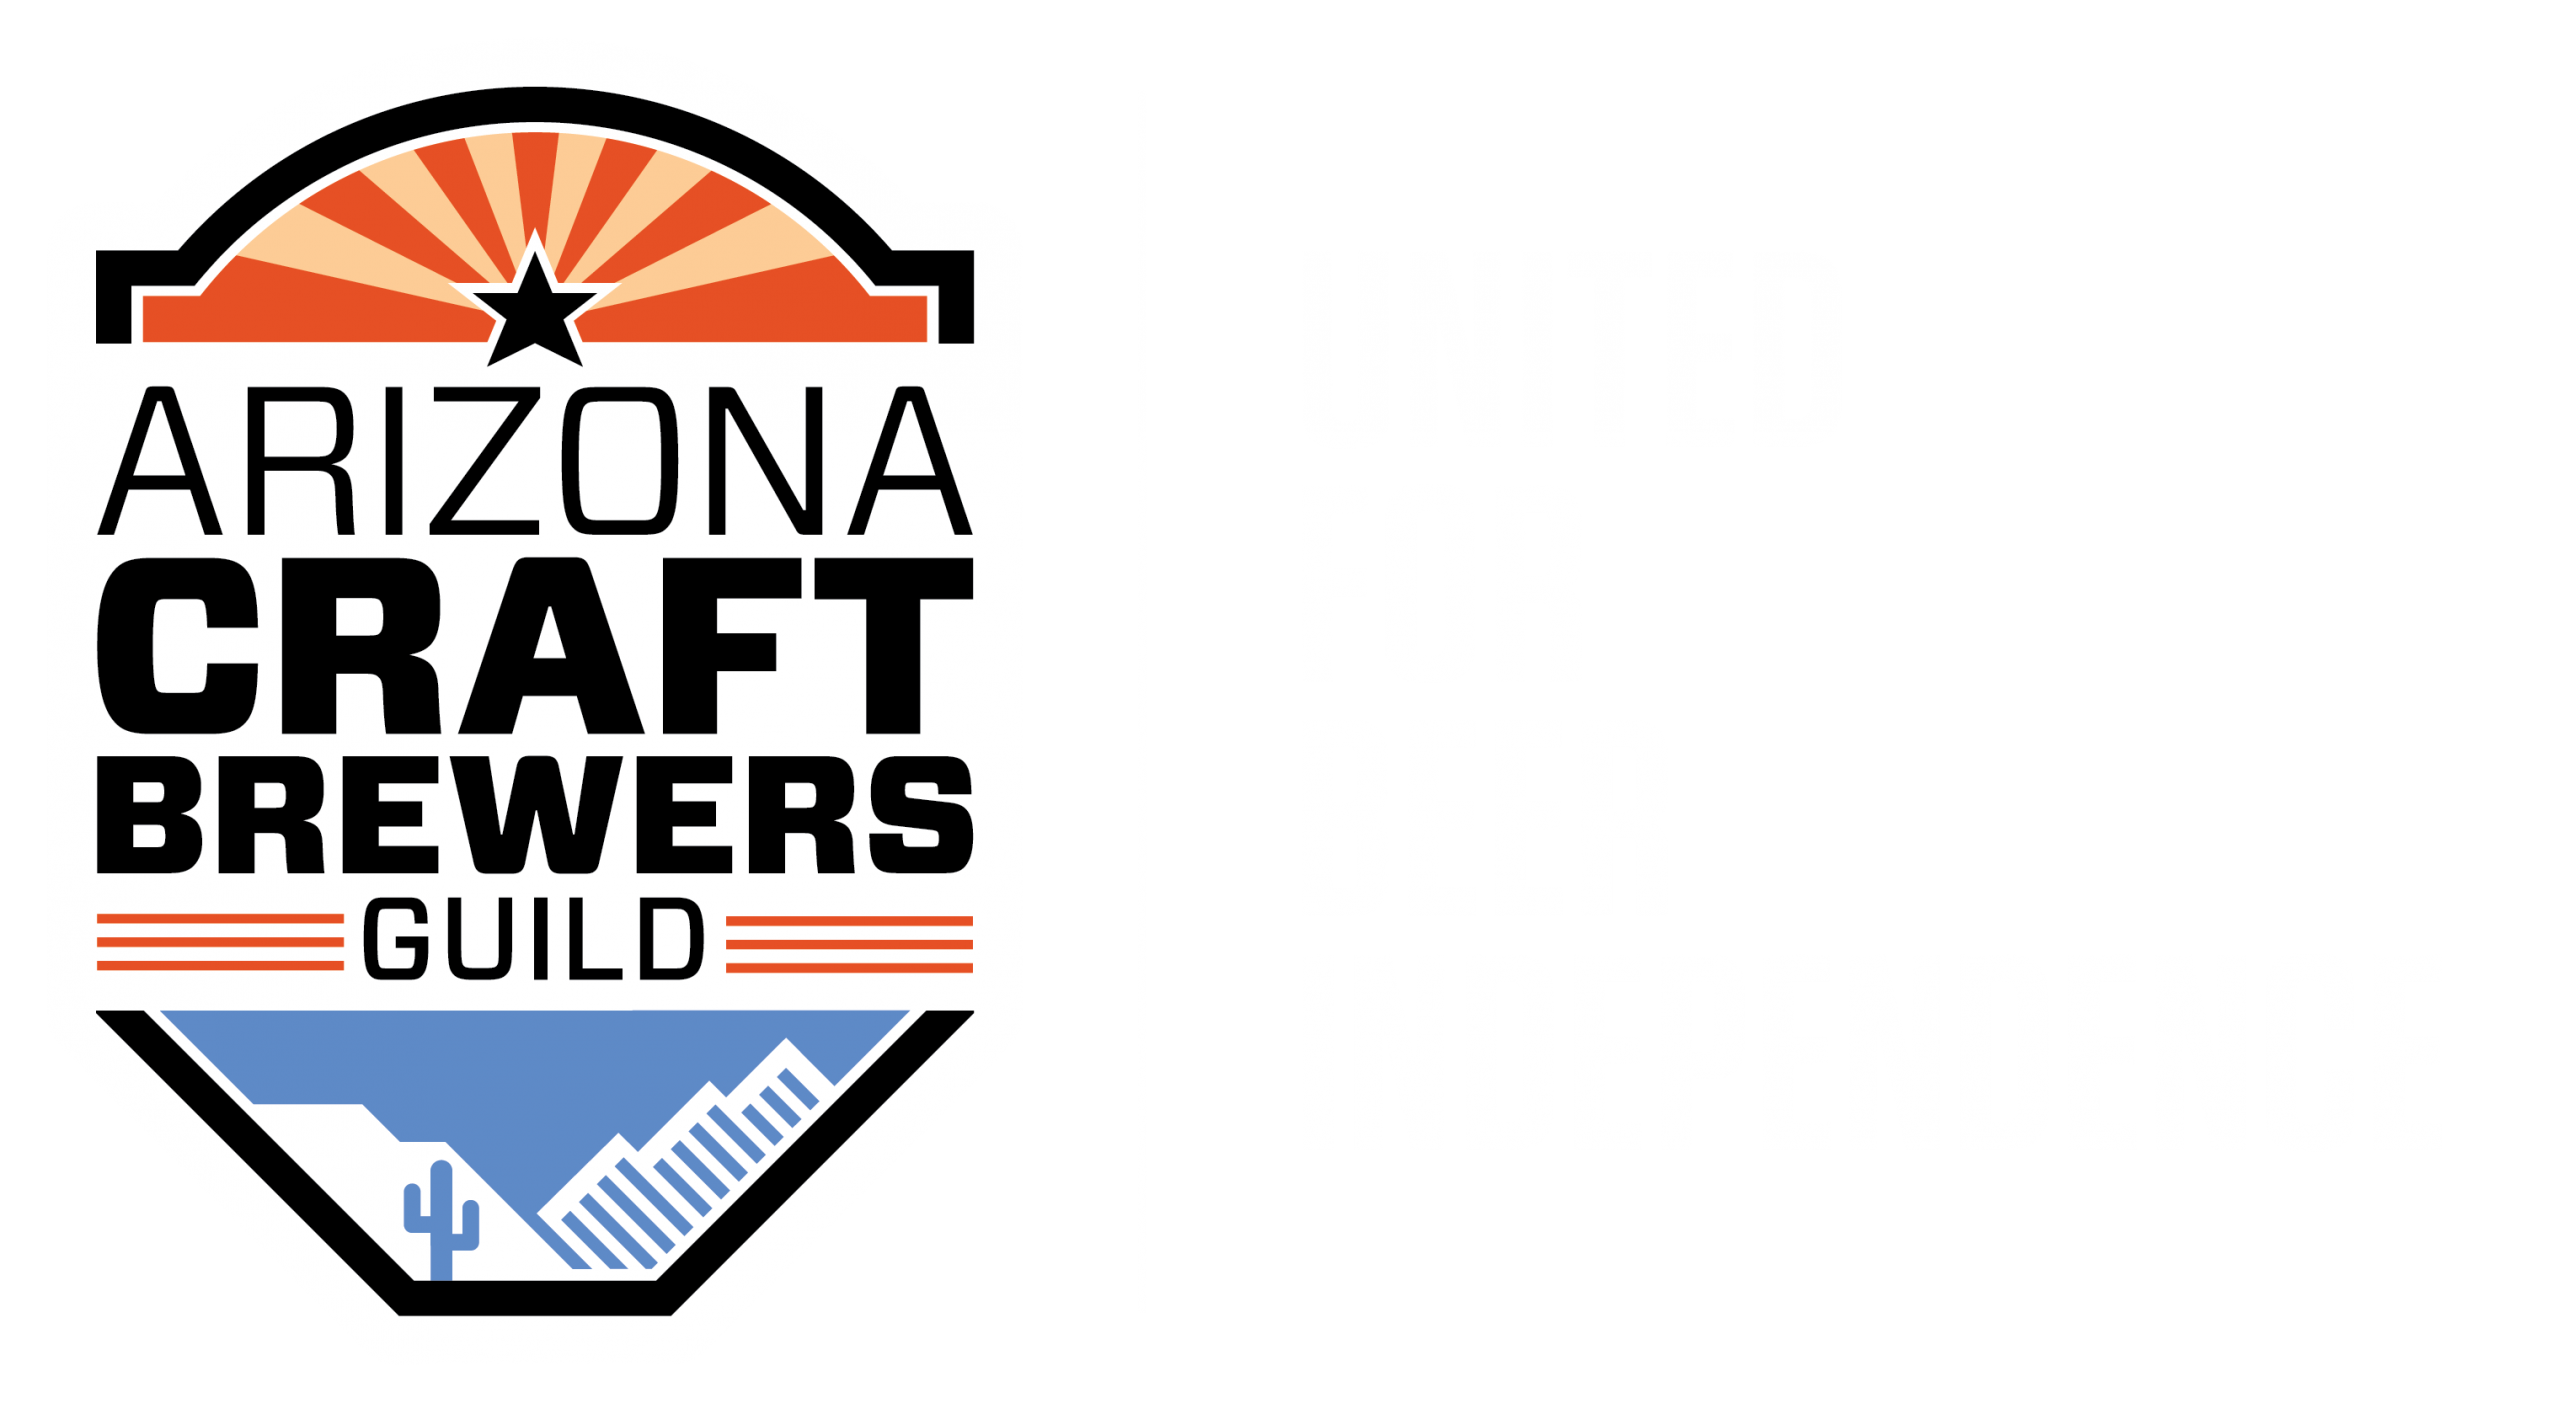 Lumberyard Brewing Company | Arizona Craft Brewers Guild